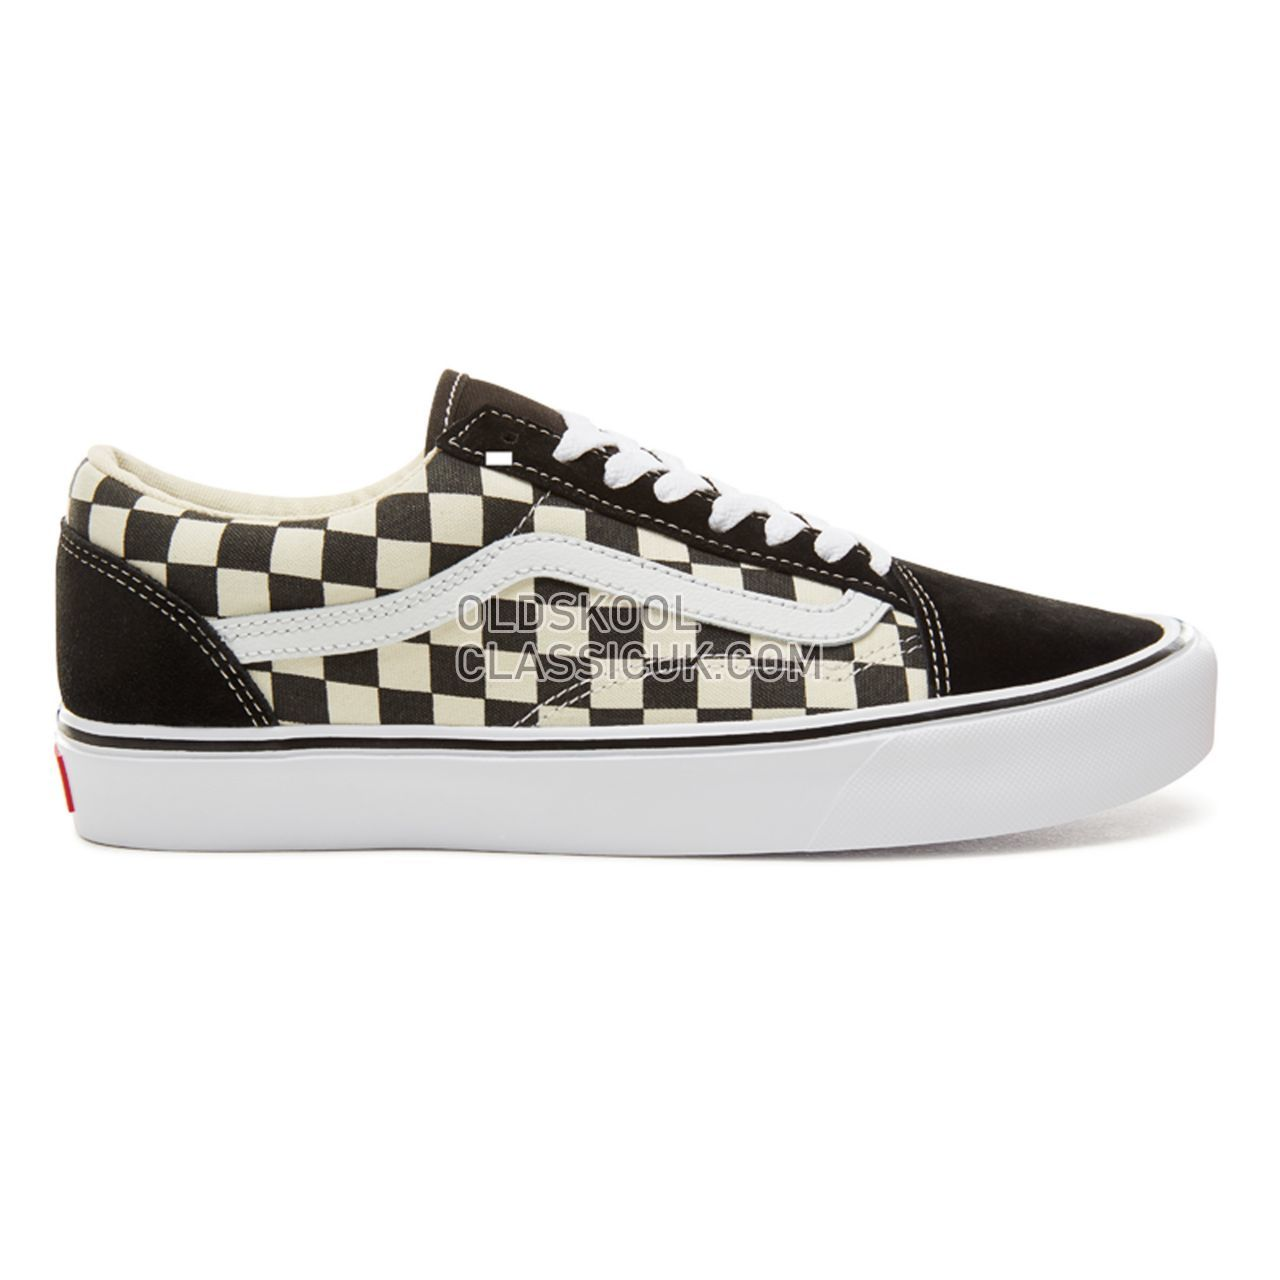 Vans Checkerboard Old Skool Lite Sneakers Mens Womens Unisex Black-White VA2Z5W5GX Shoes